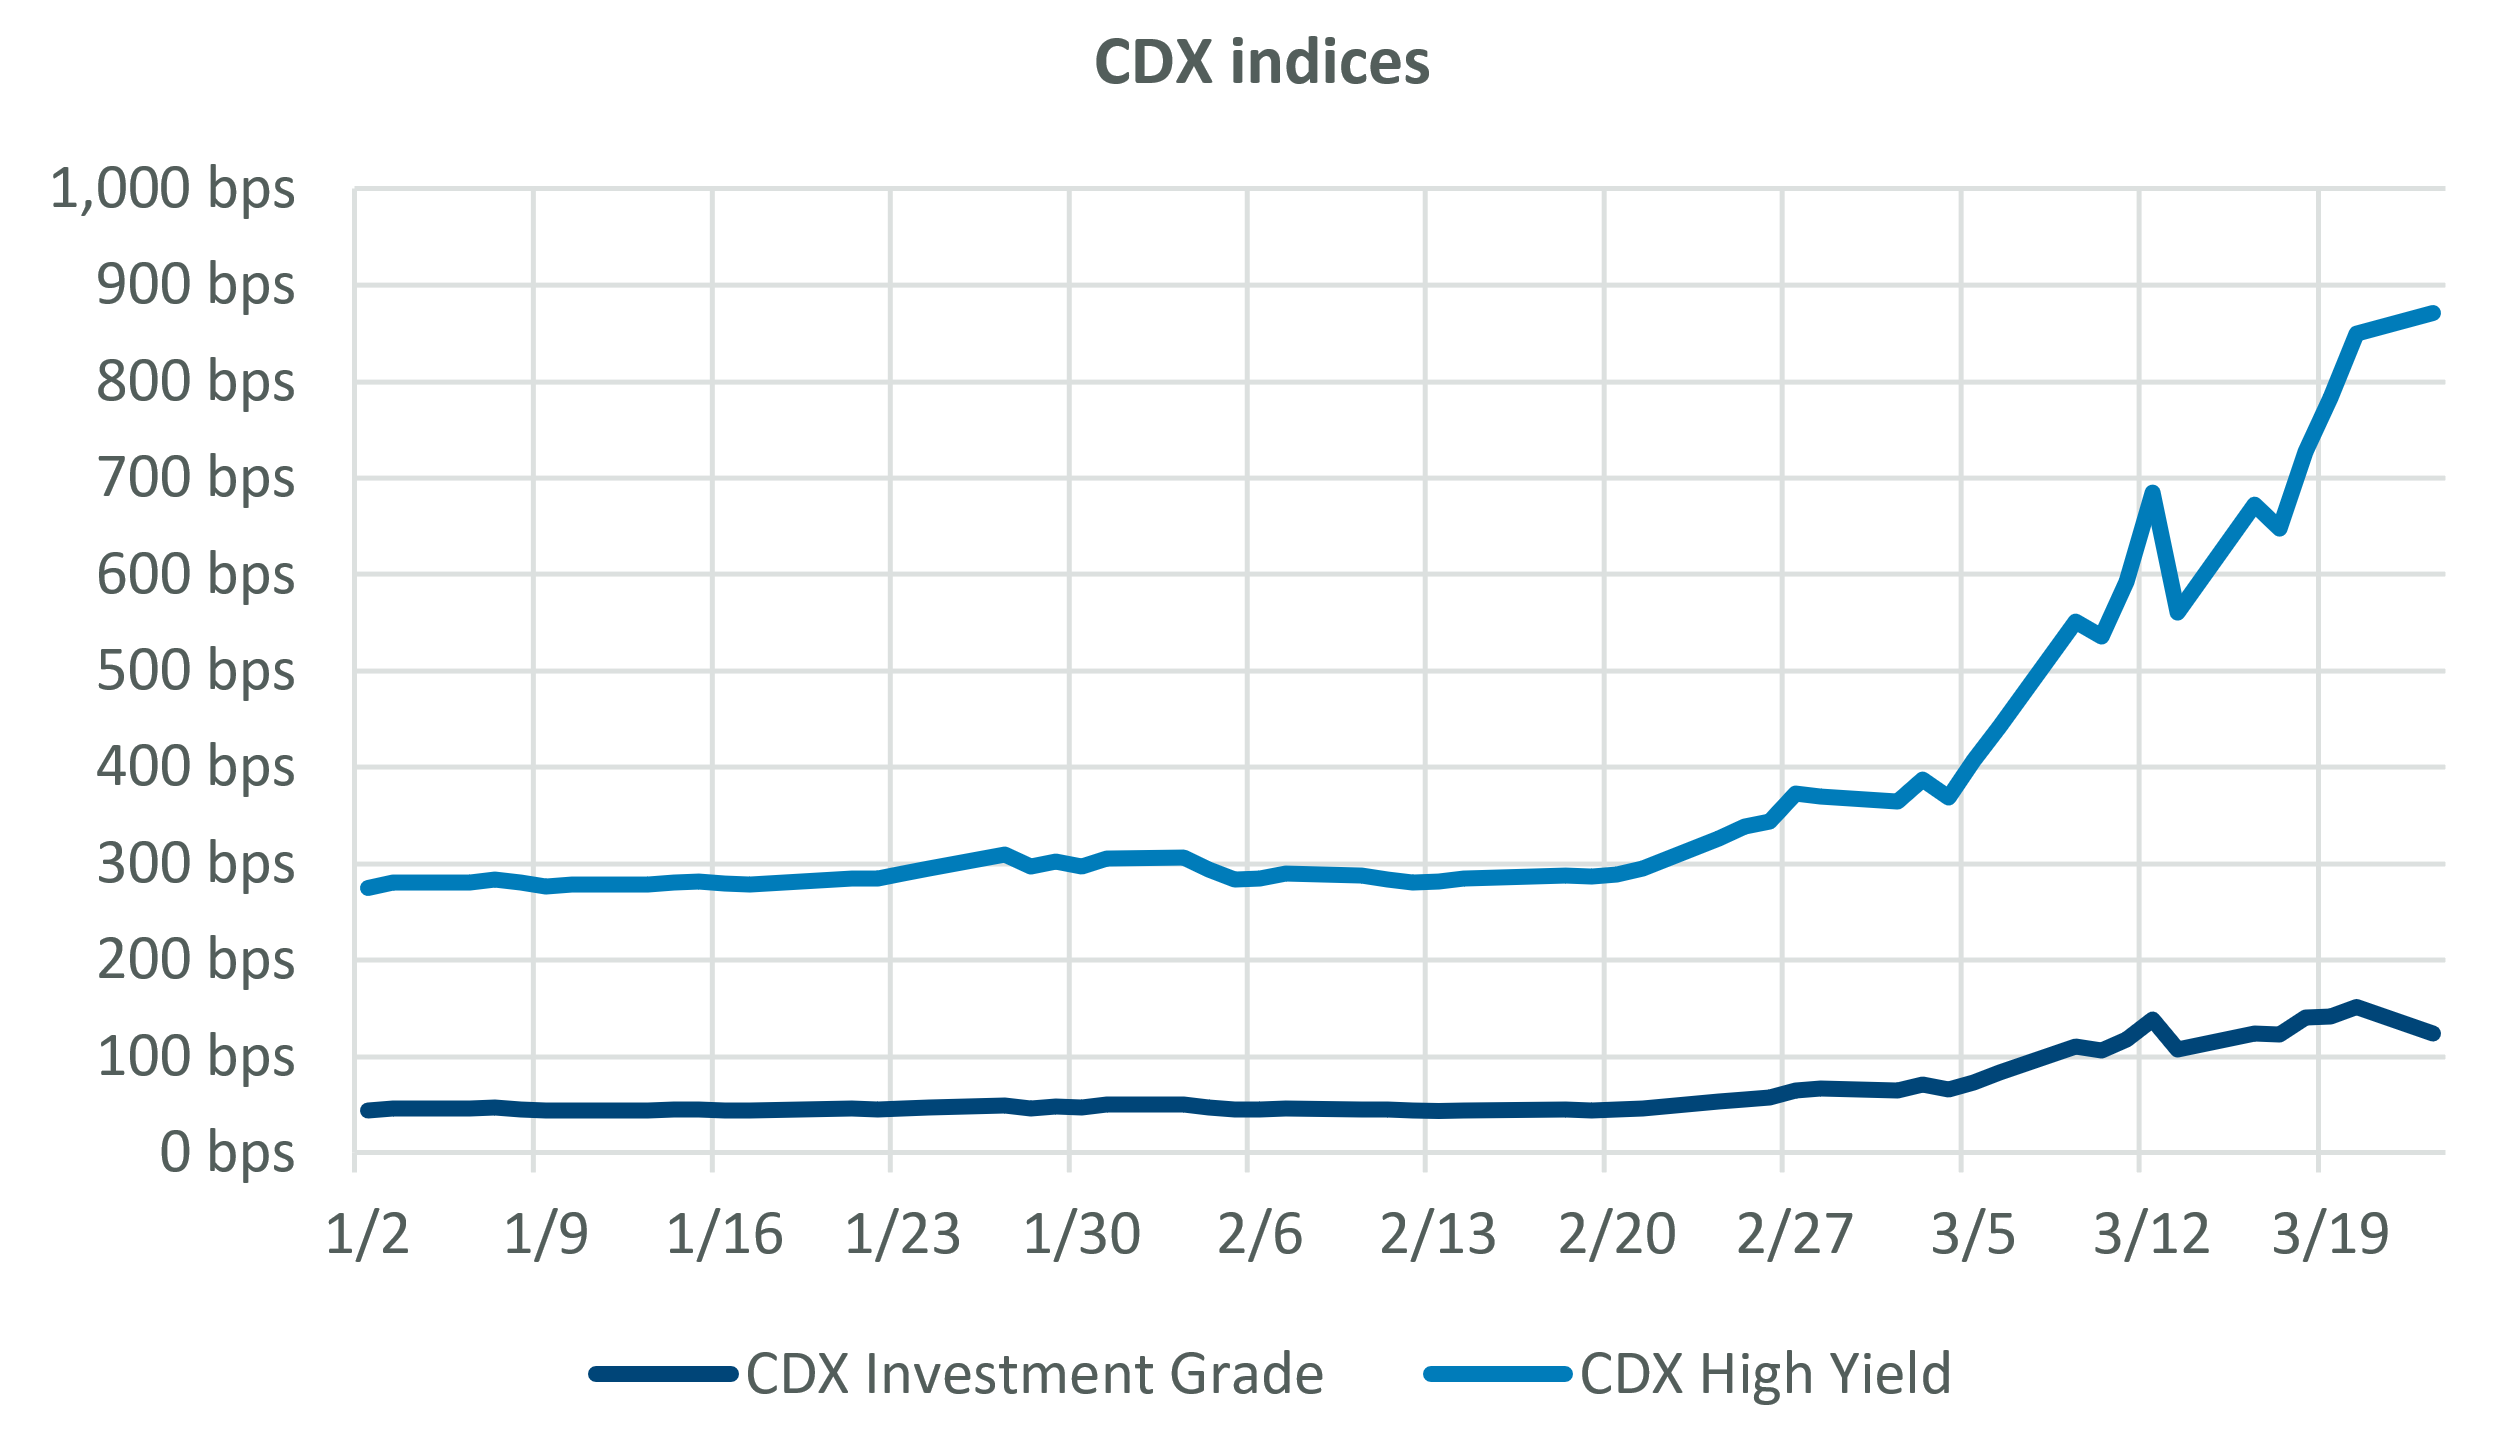 CDX Indices